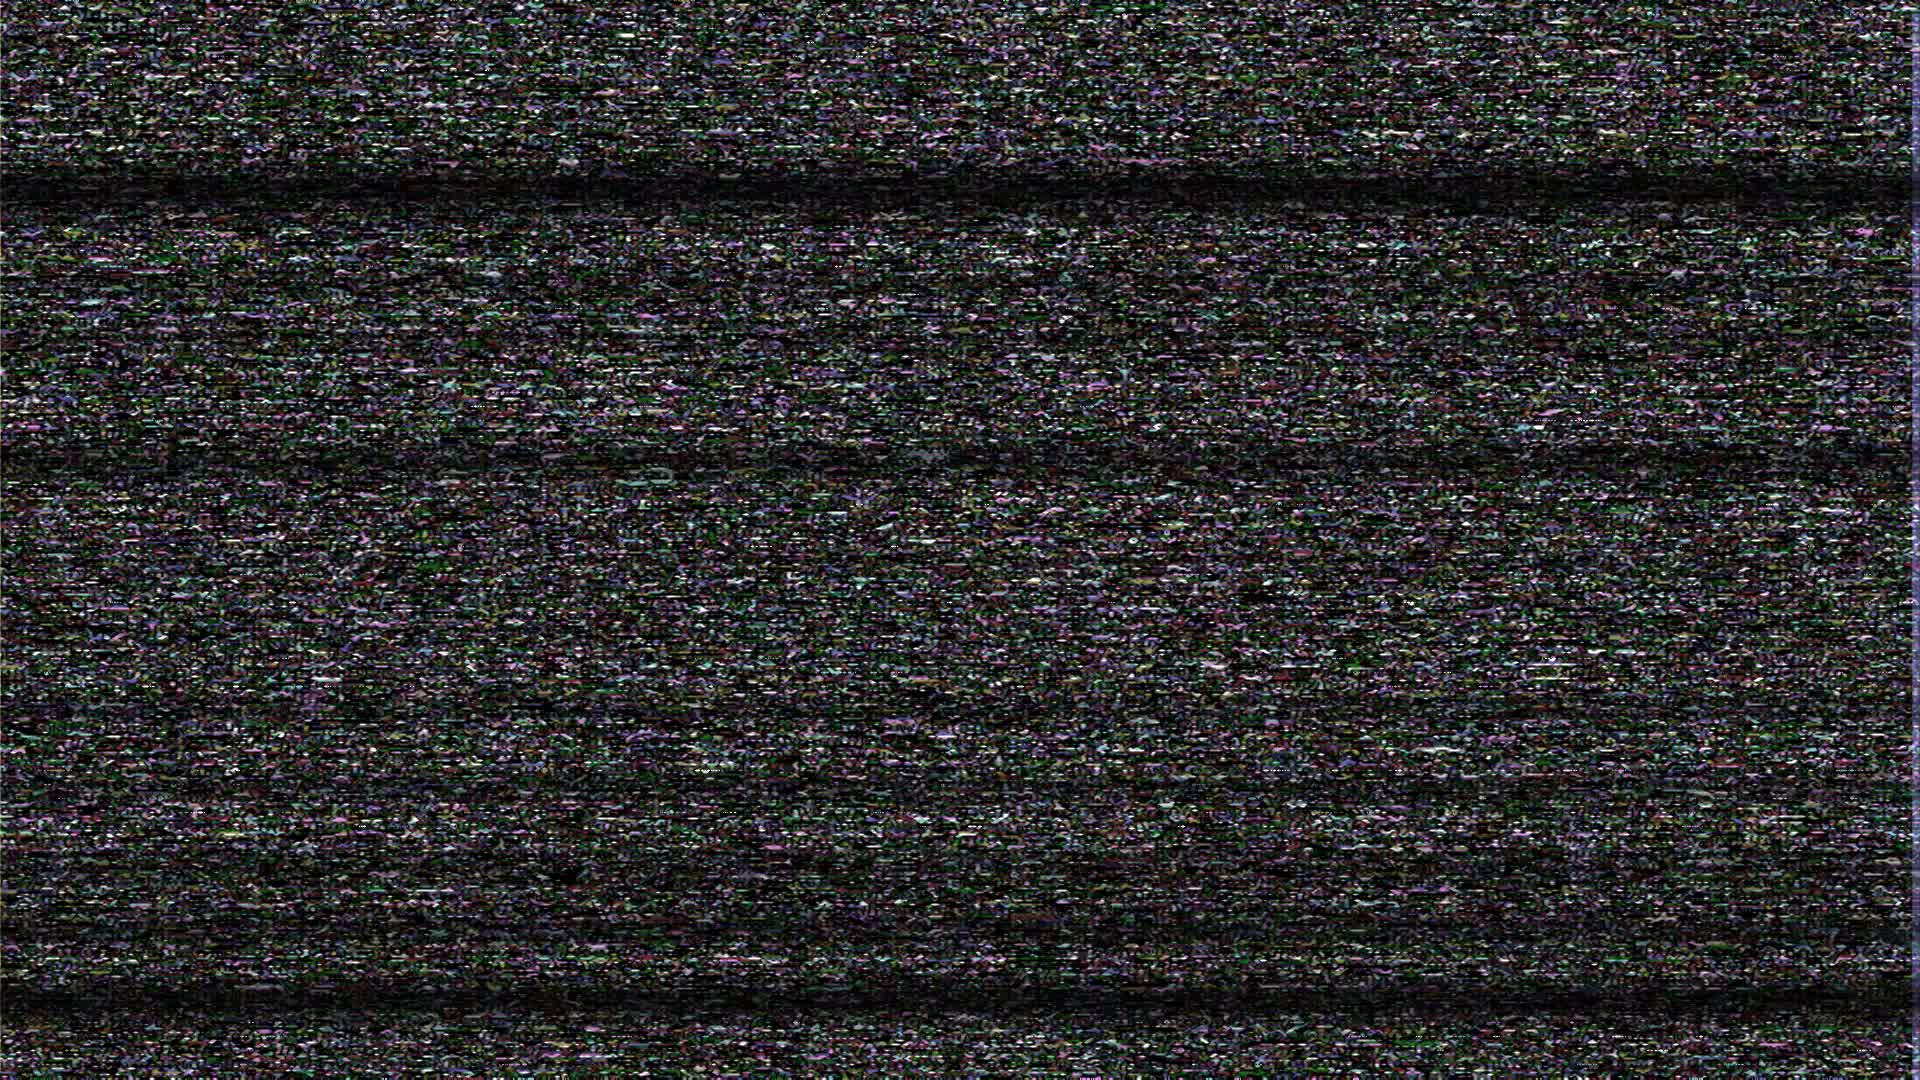 Tv Static Background Hd Tv static 1920x1080